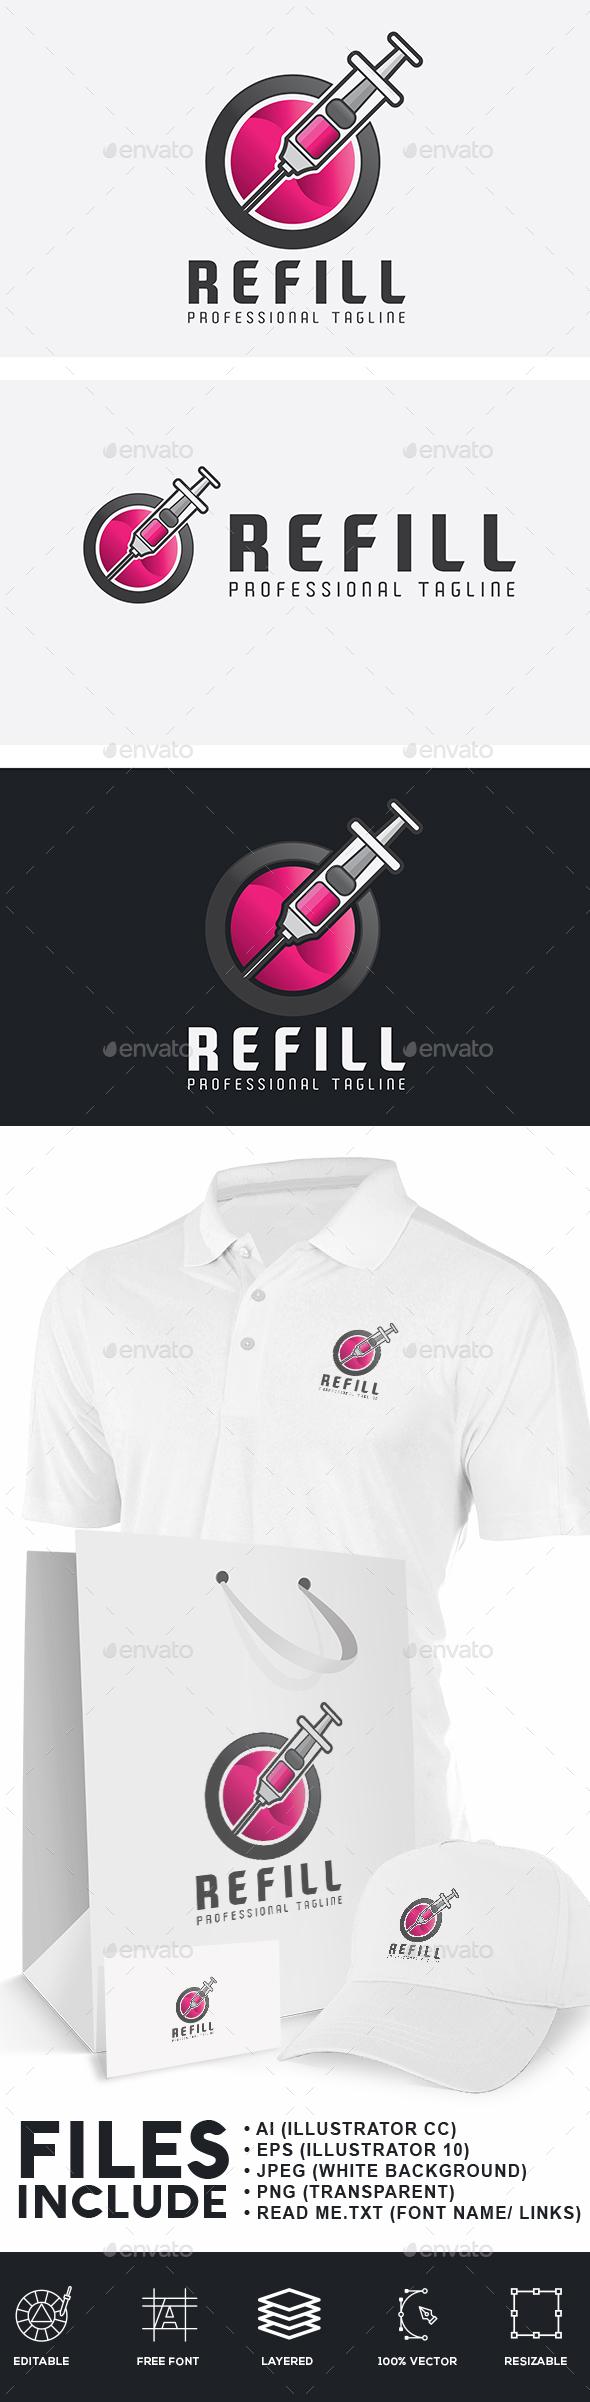 Refill Injection Logo - Objects Logo Templates